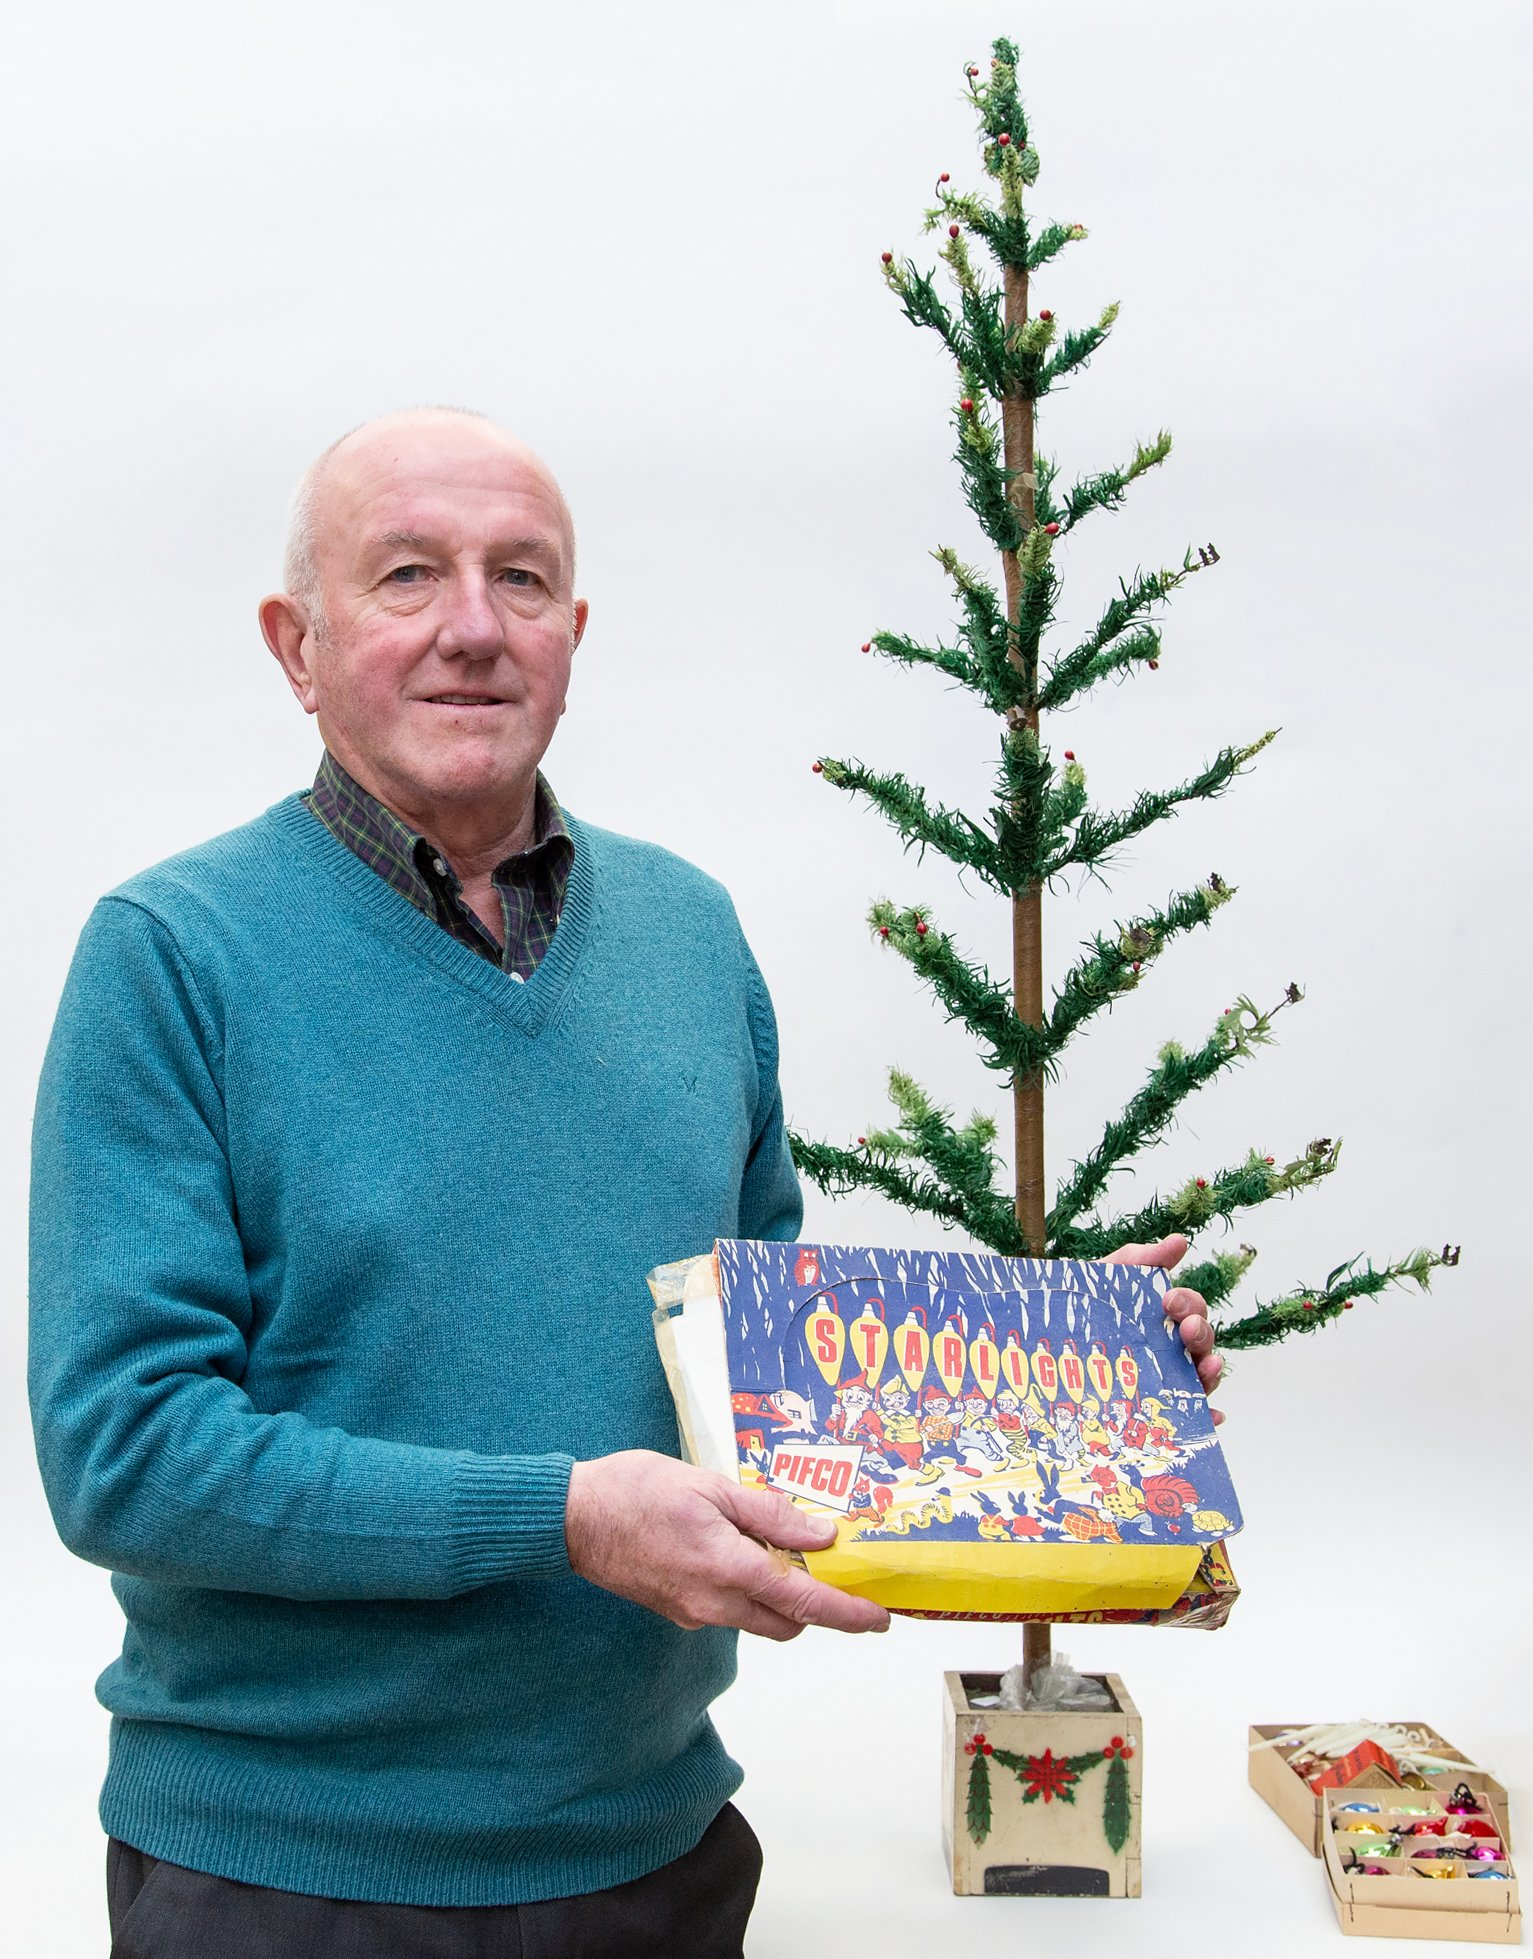 Vintage 1930s Woolworths Christmas Tree Auctioned Bbc News